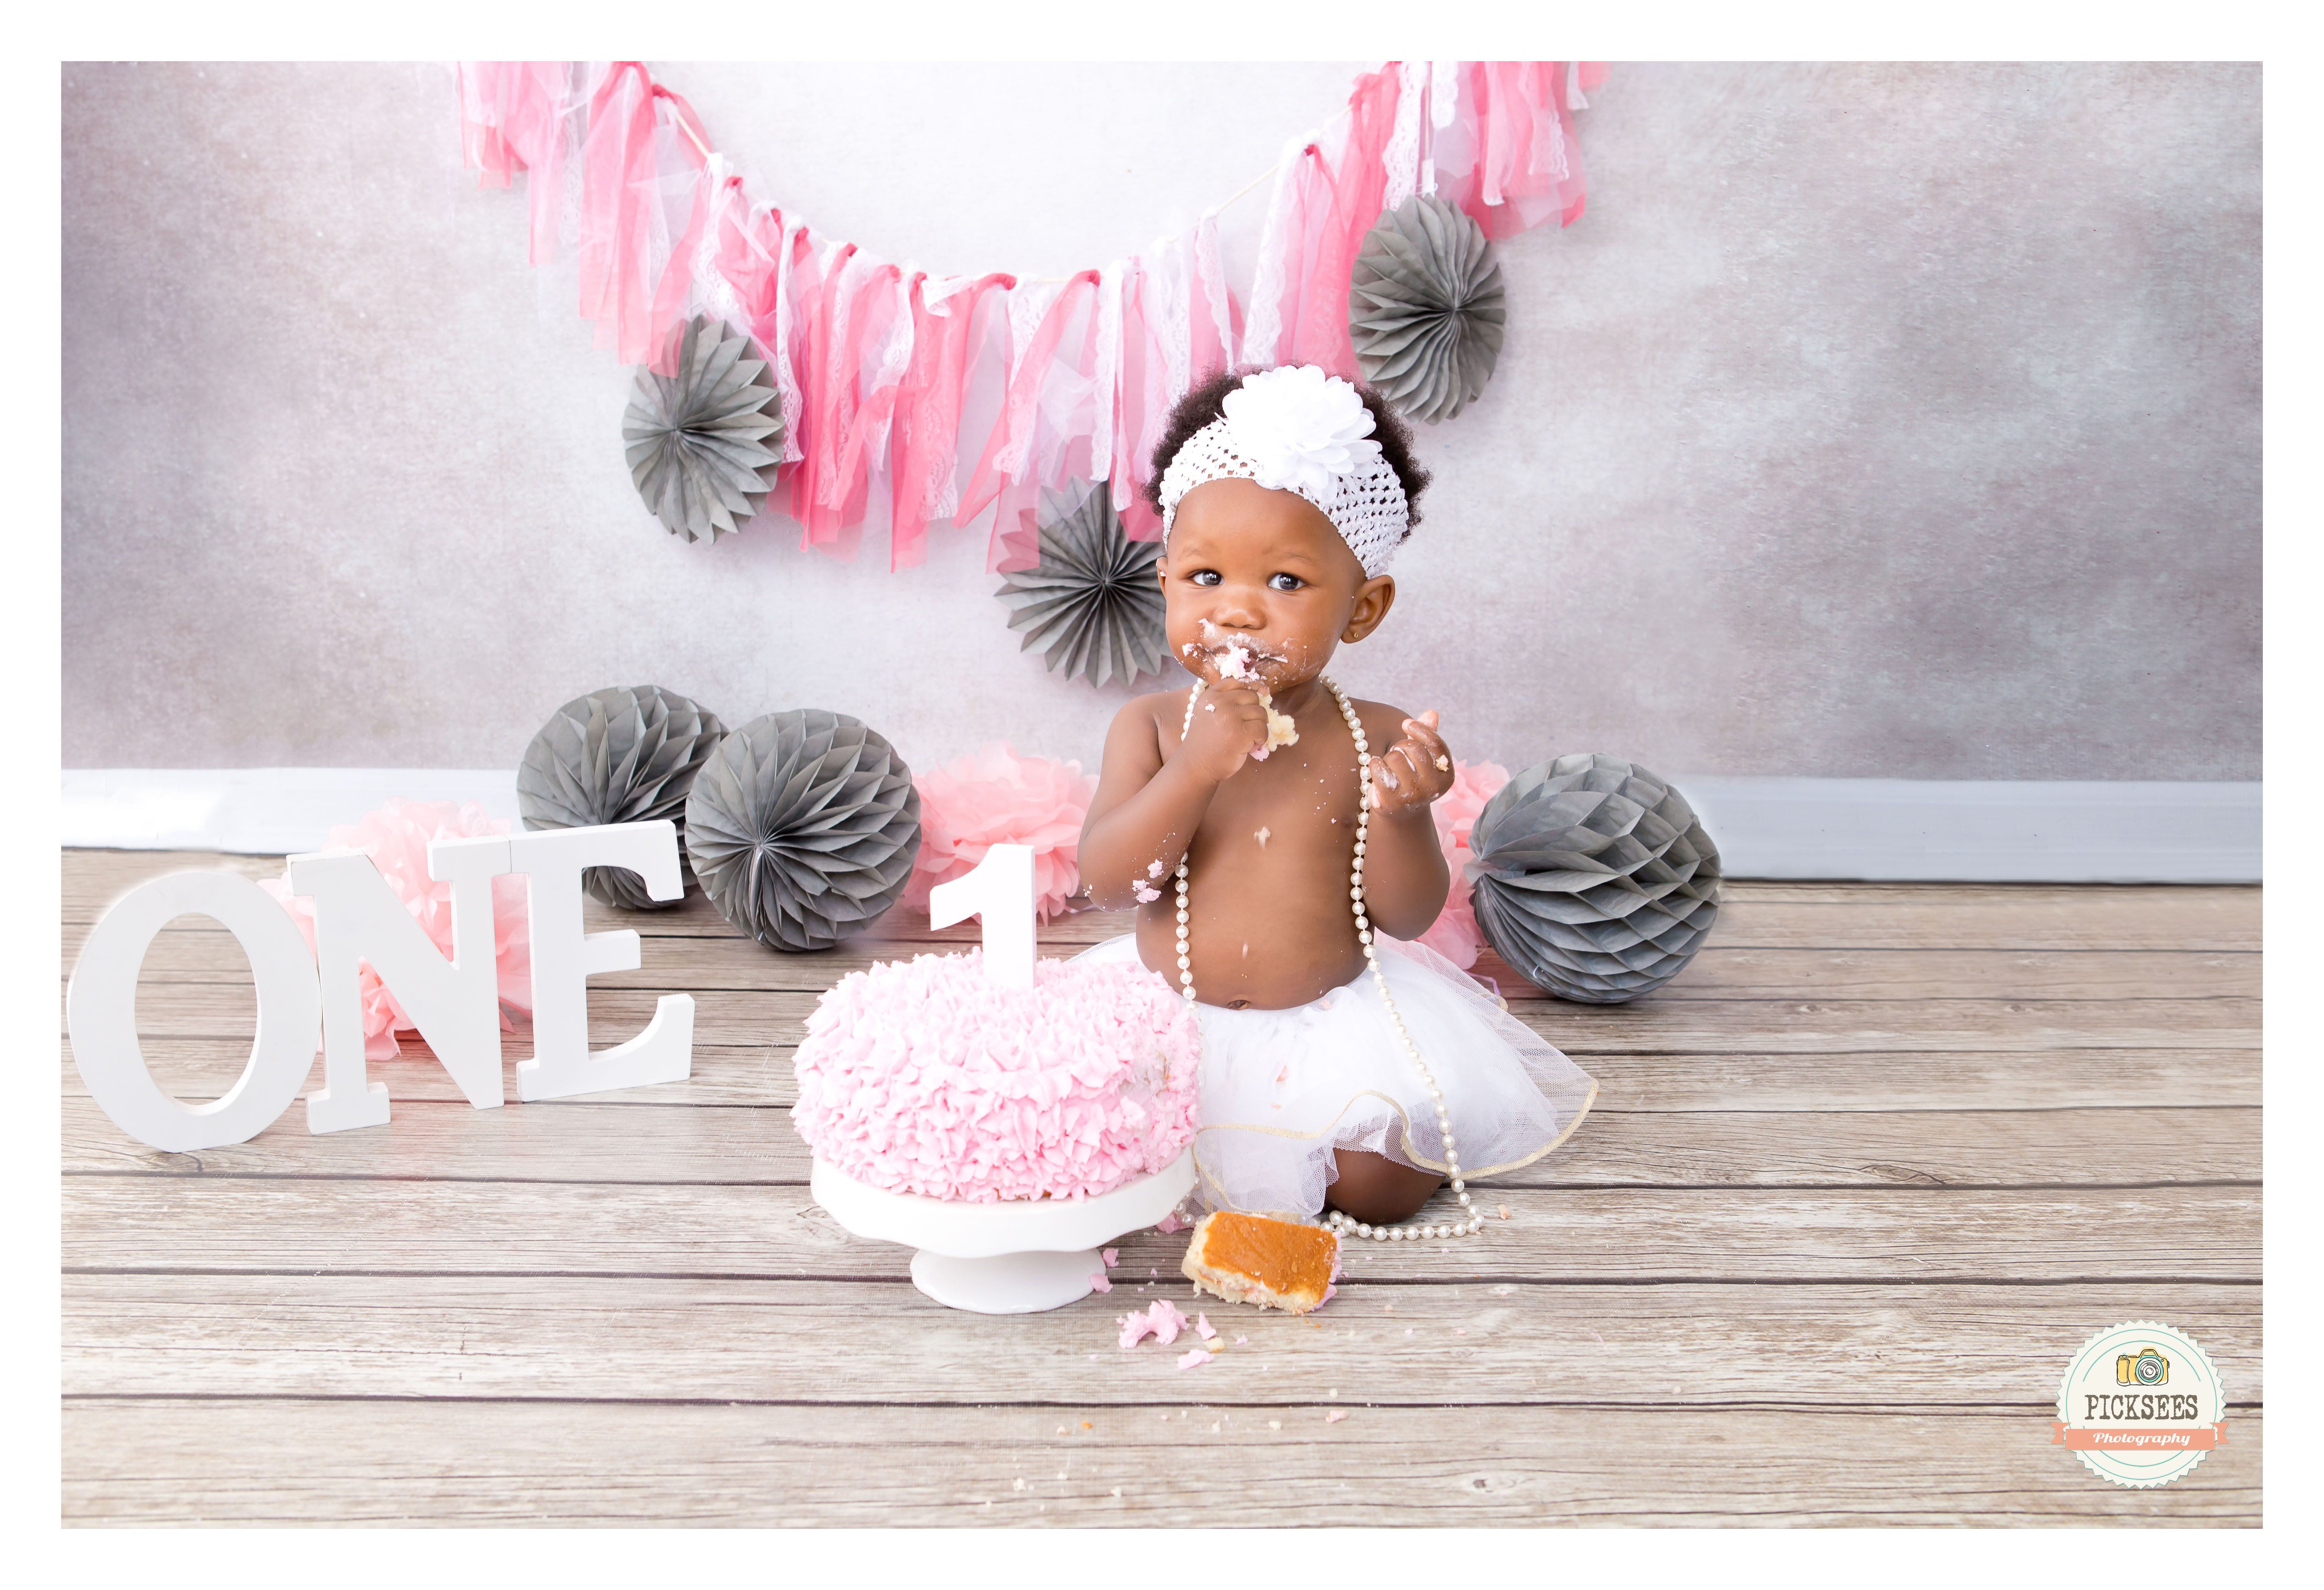 Pretoria East Cake Smash Photographer